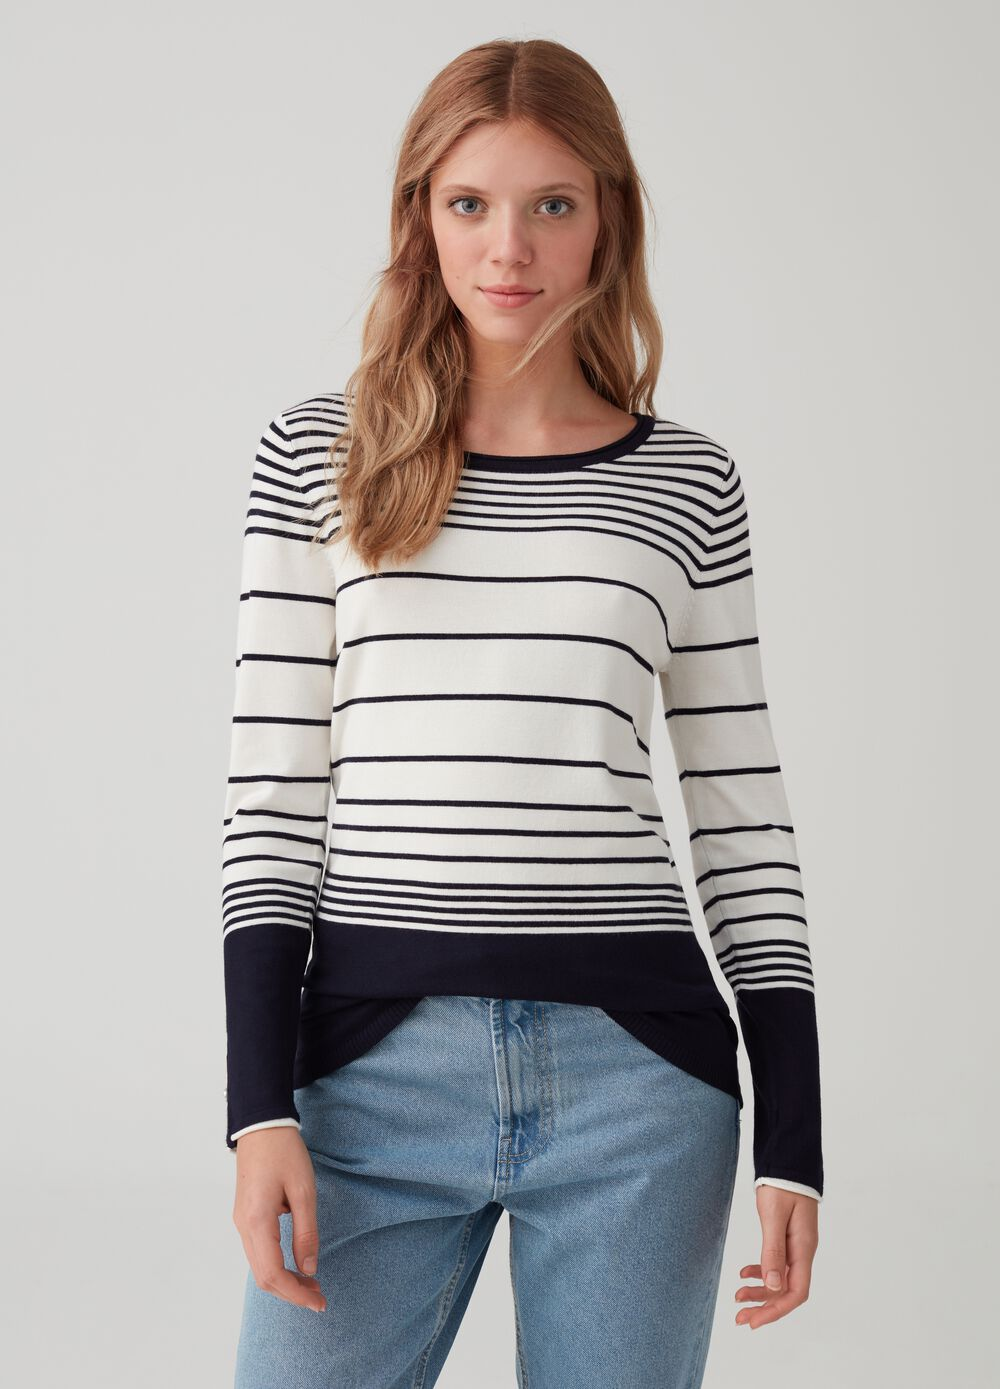 Ribbed knit pullover with striped pattern